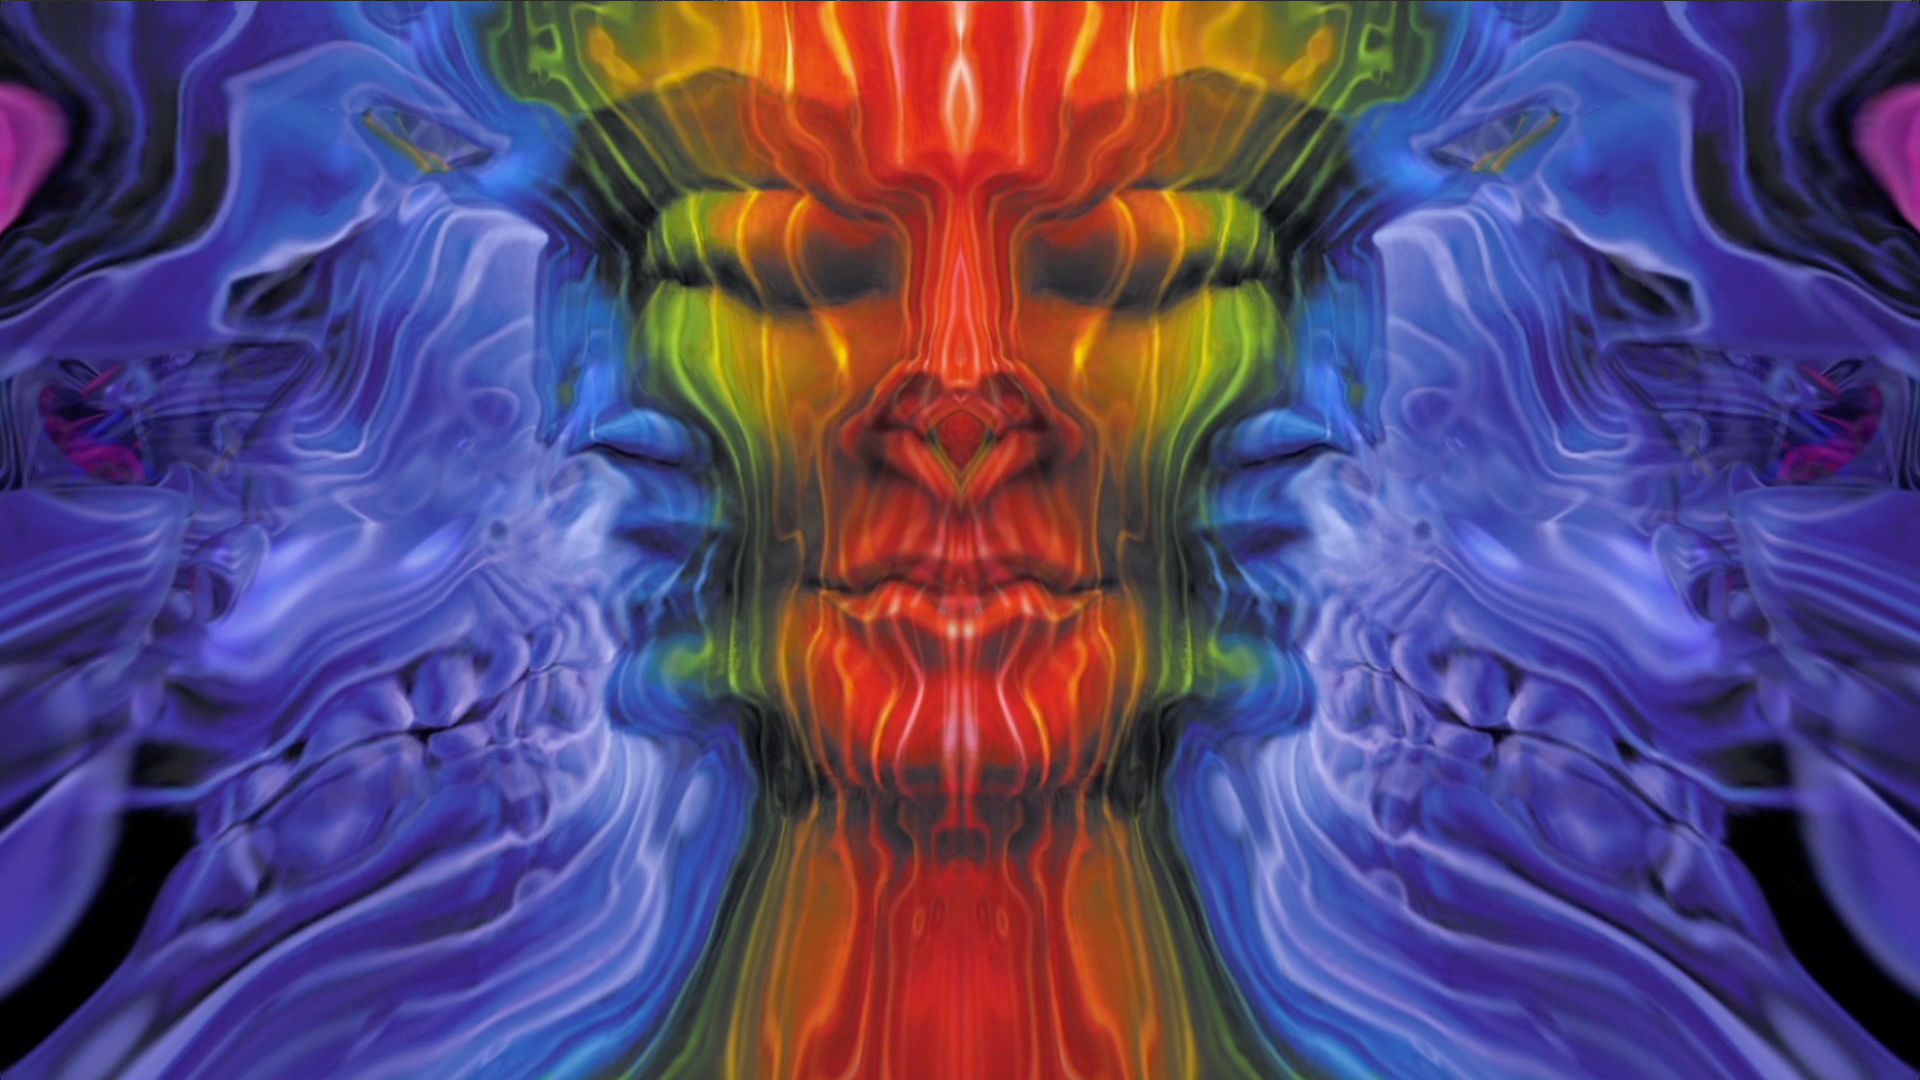 Visuals with Alex Grey Paintings